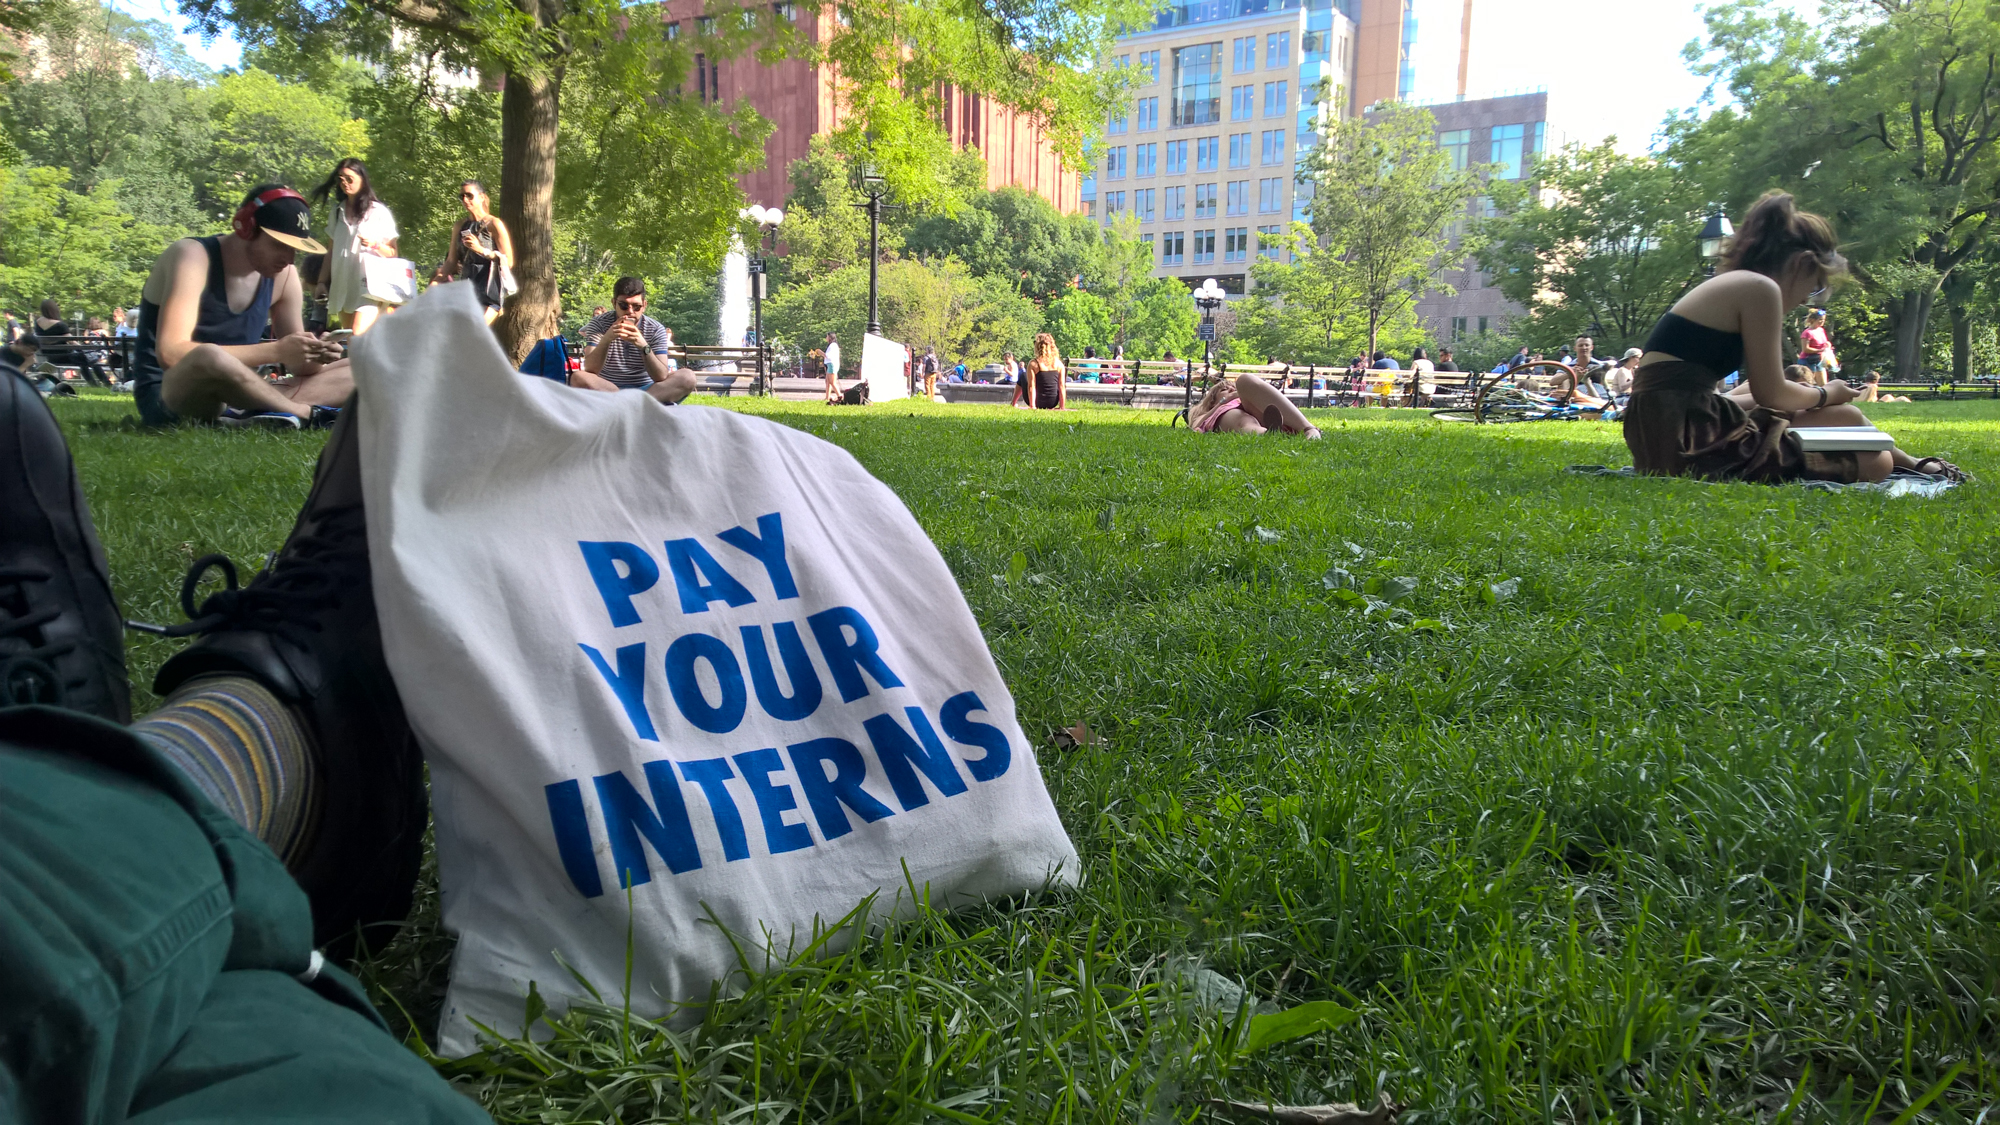 Intern Labor Rights in the Park!